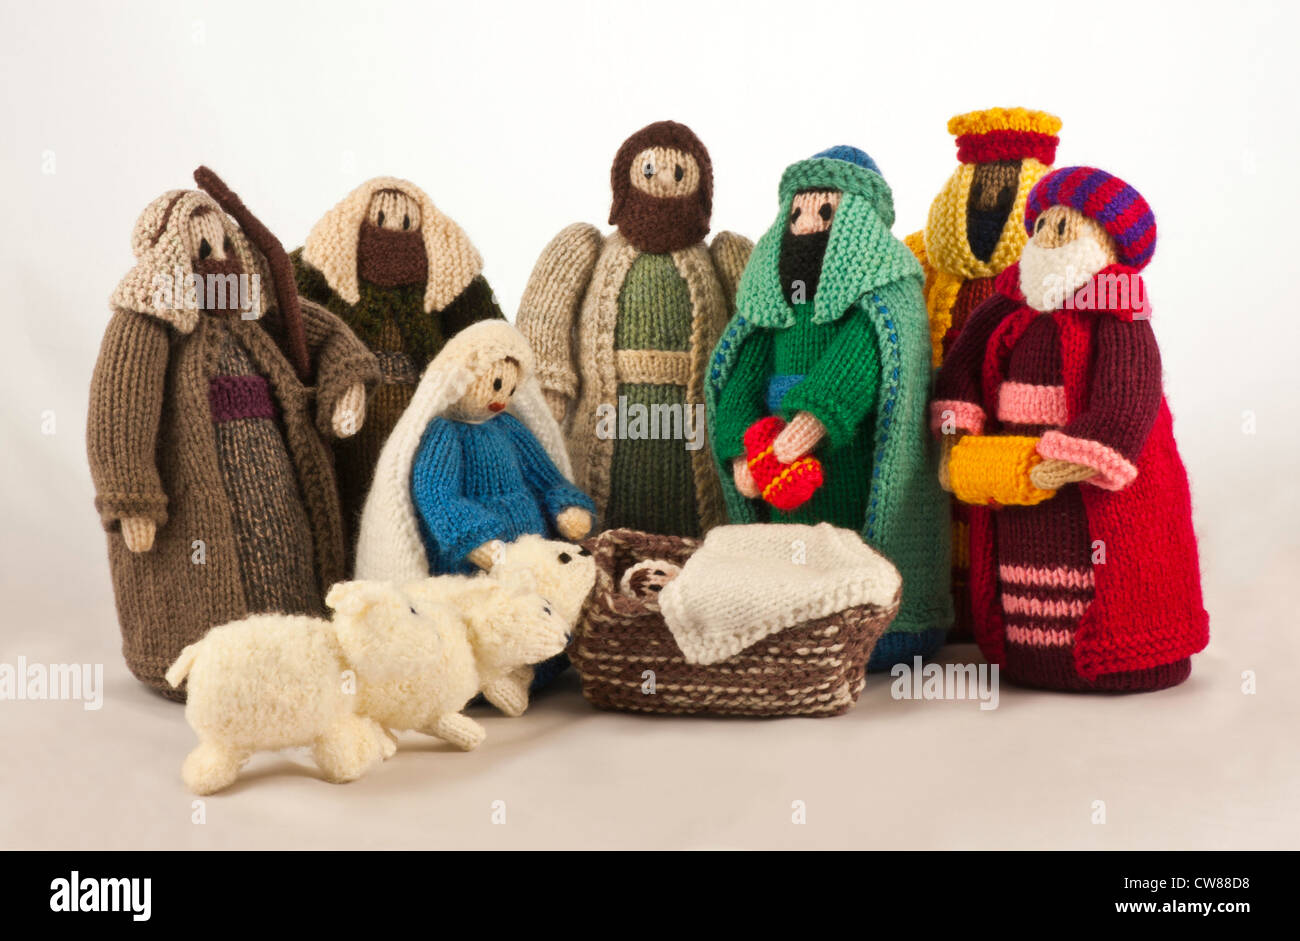 knitted nativity scene with mary  joseph  baby jesus  two